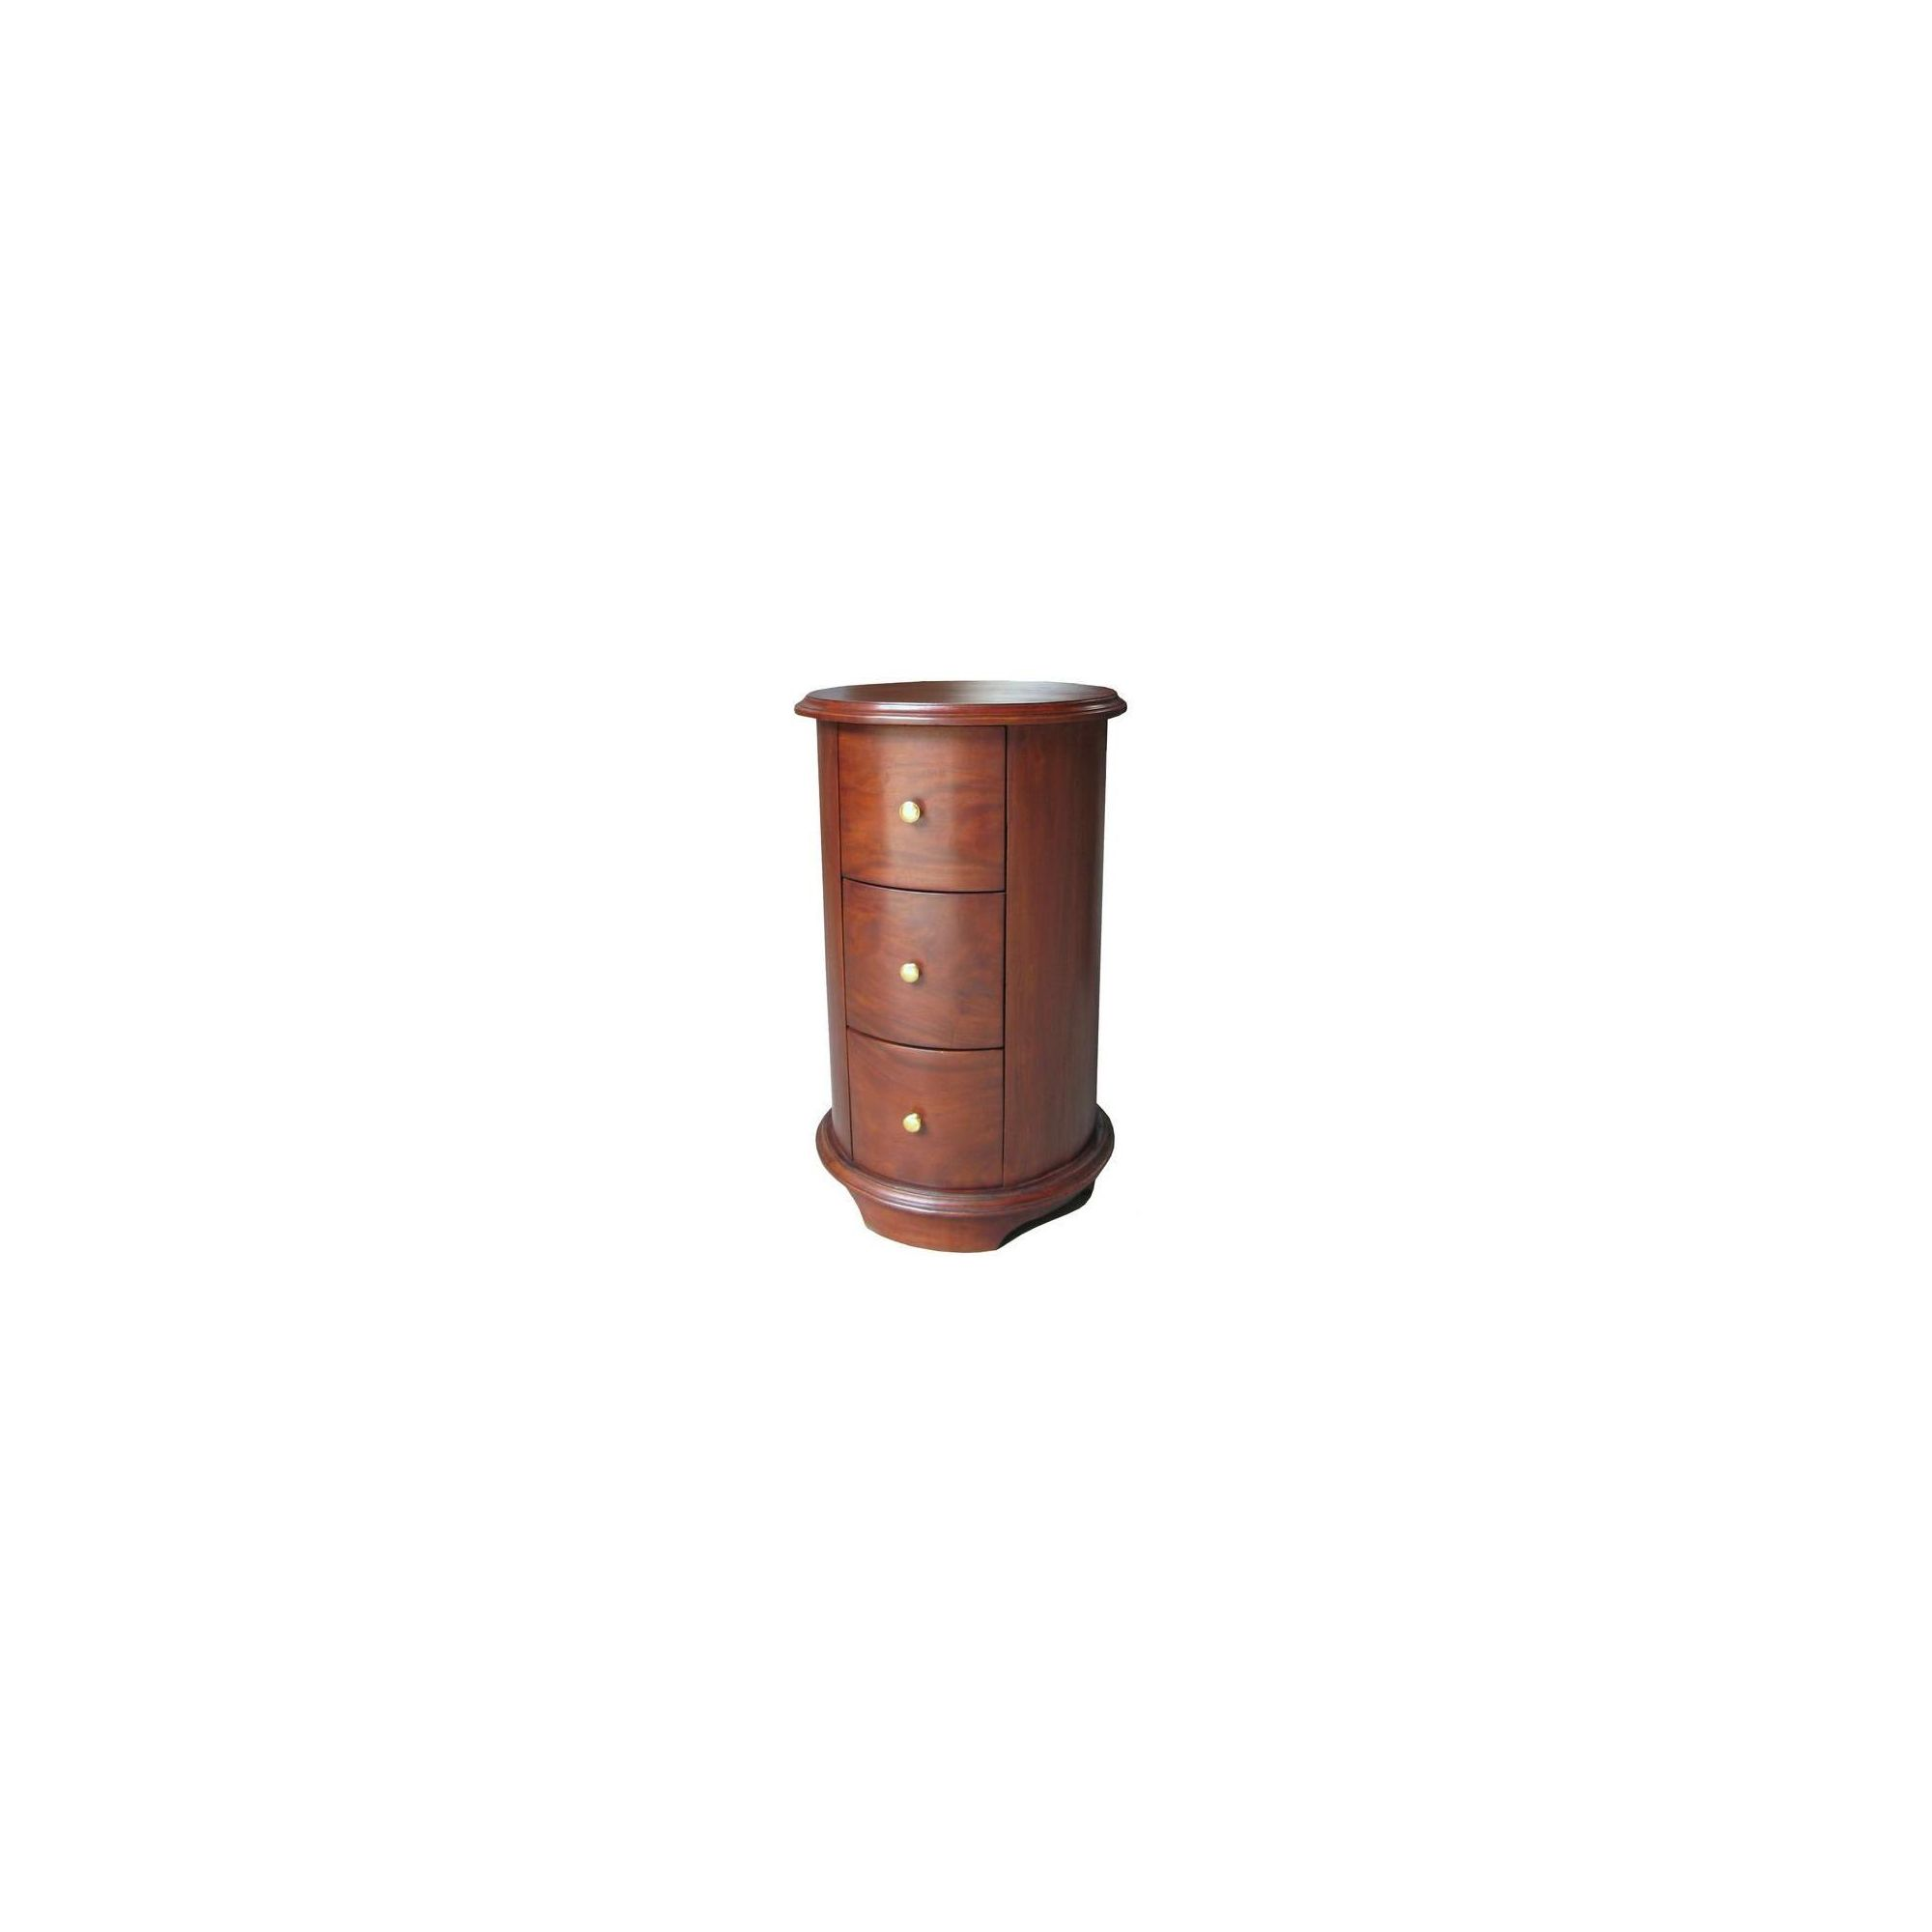 Lock stock and barrel Mahogany Round Bedside Table in Mahogany - Wax at Tescos Direct